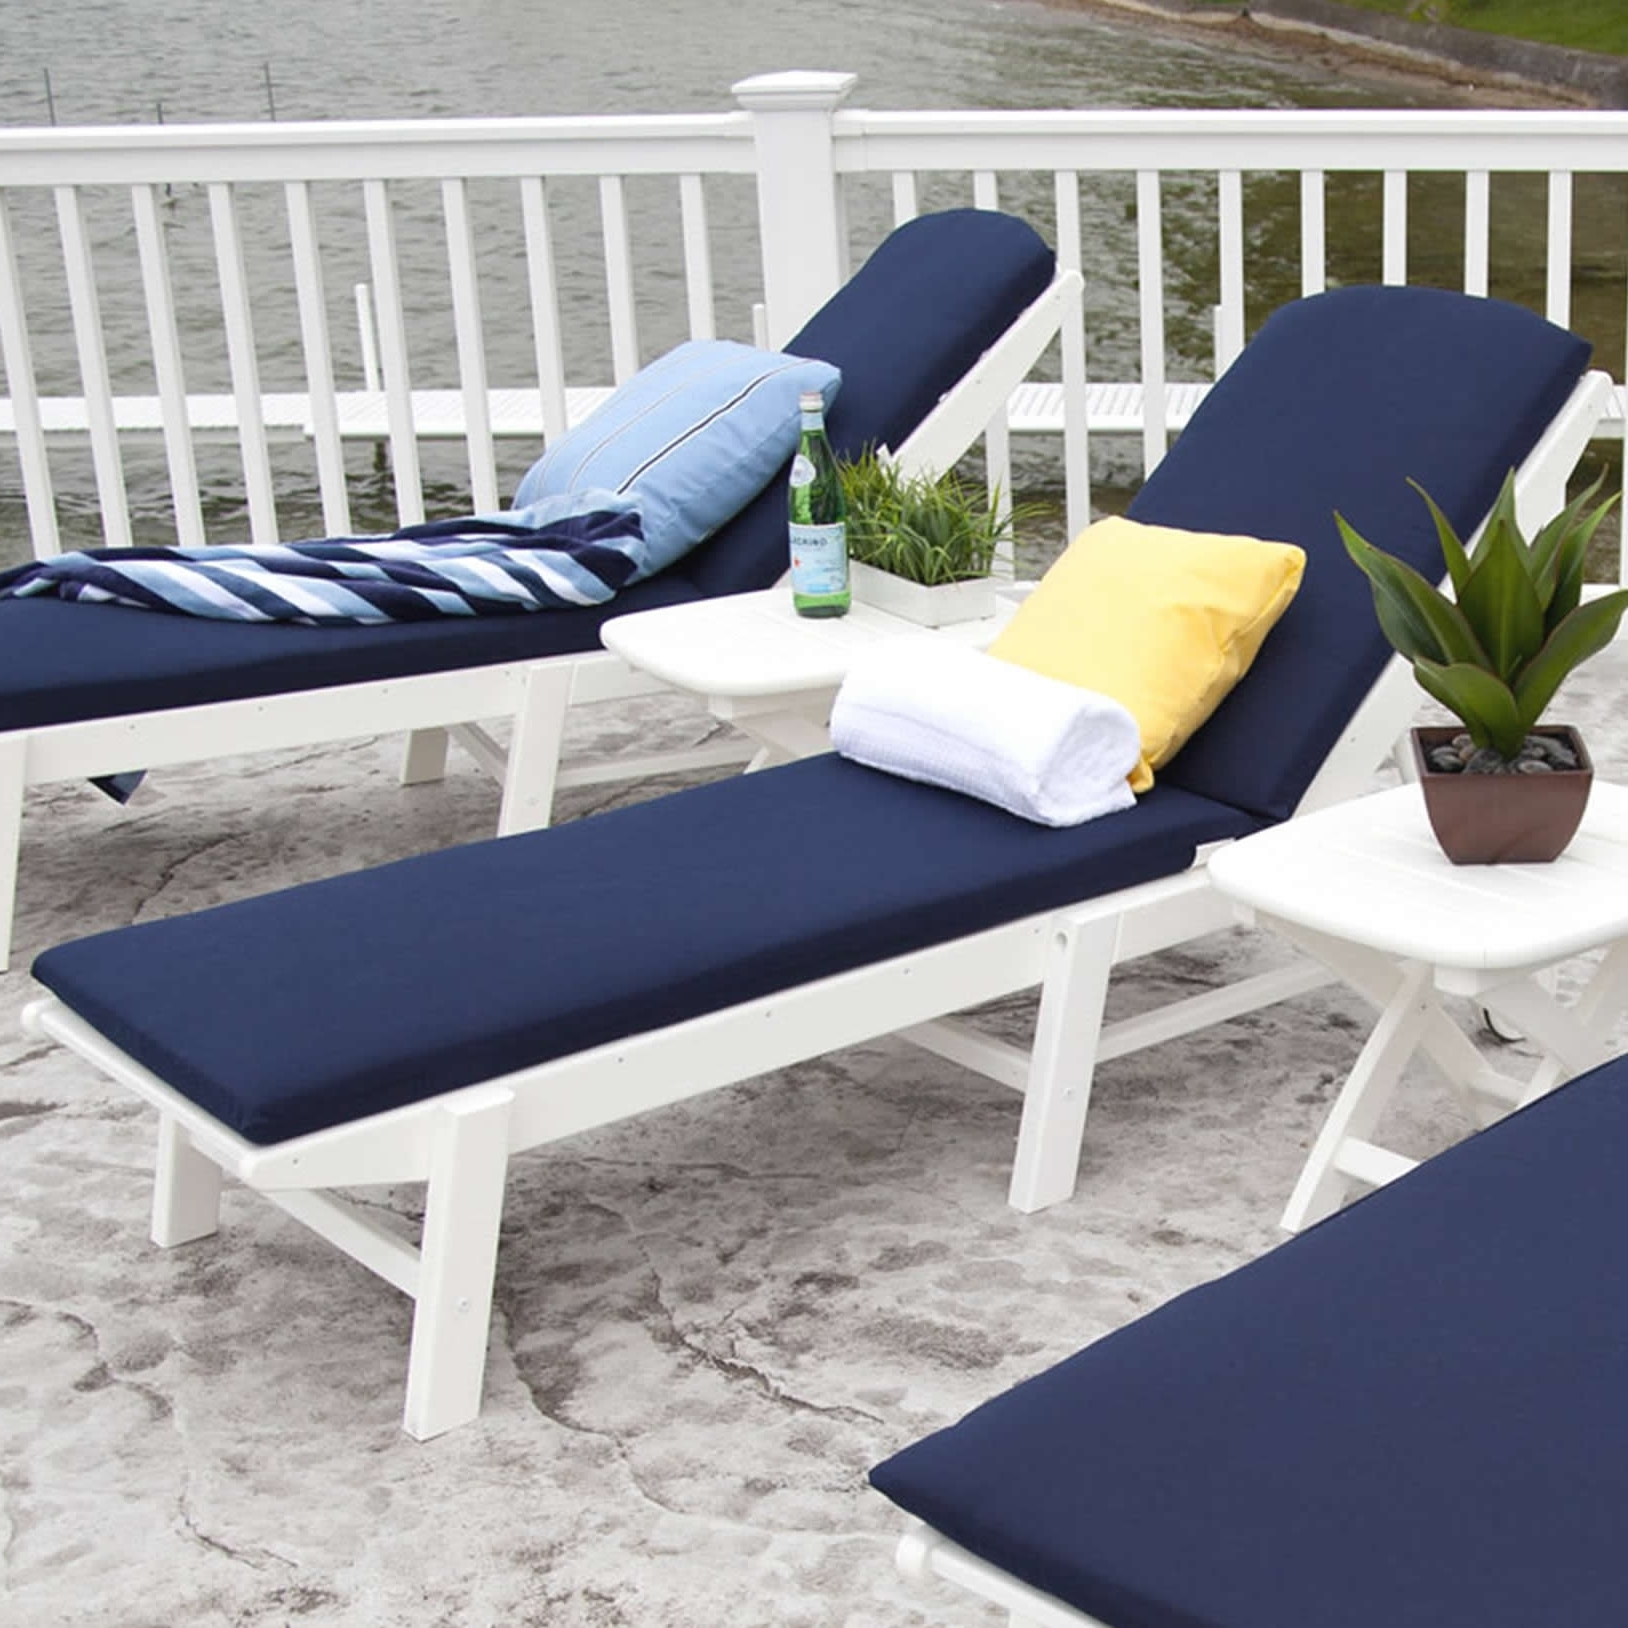 Widely Used Outdoor Cushions For Chaise Lounge Chairs Regarding Polywood Nautical Chaise Lounge Cushions (View 8 of 15)